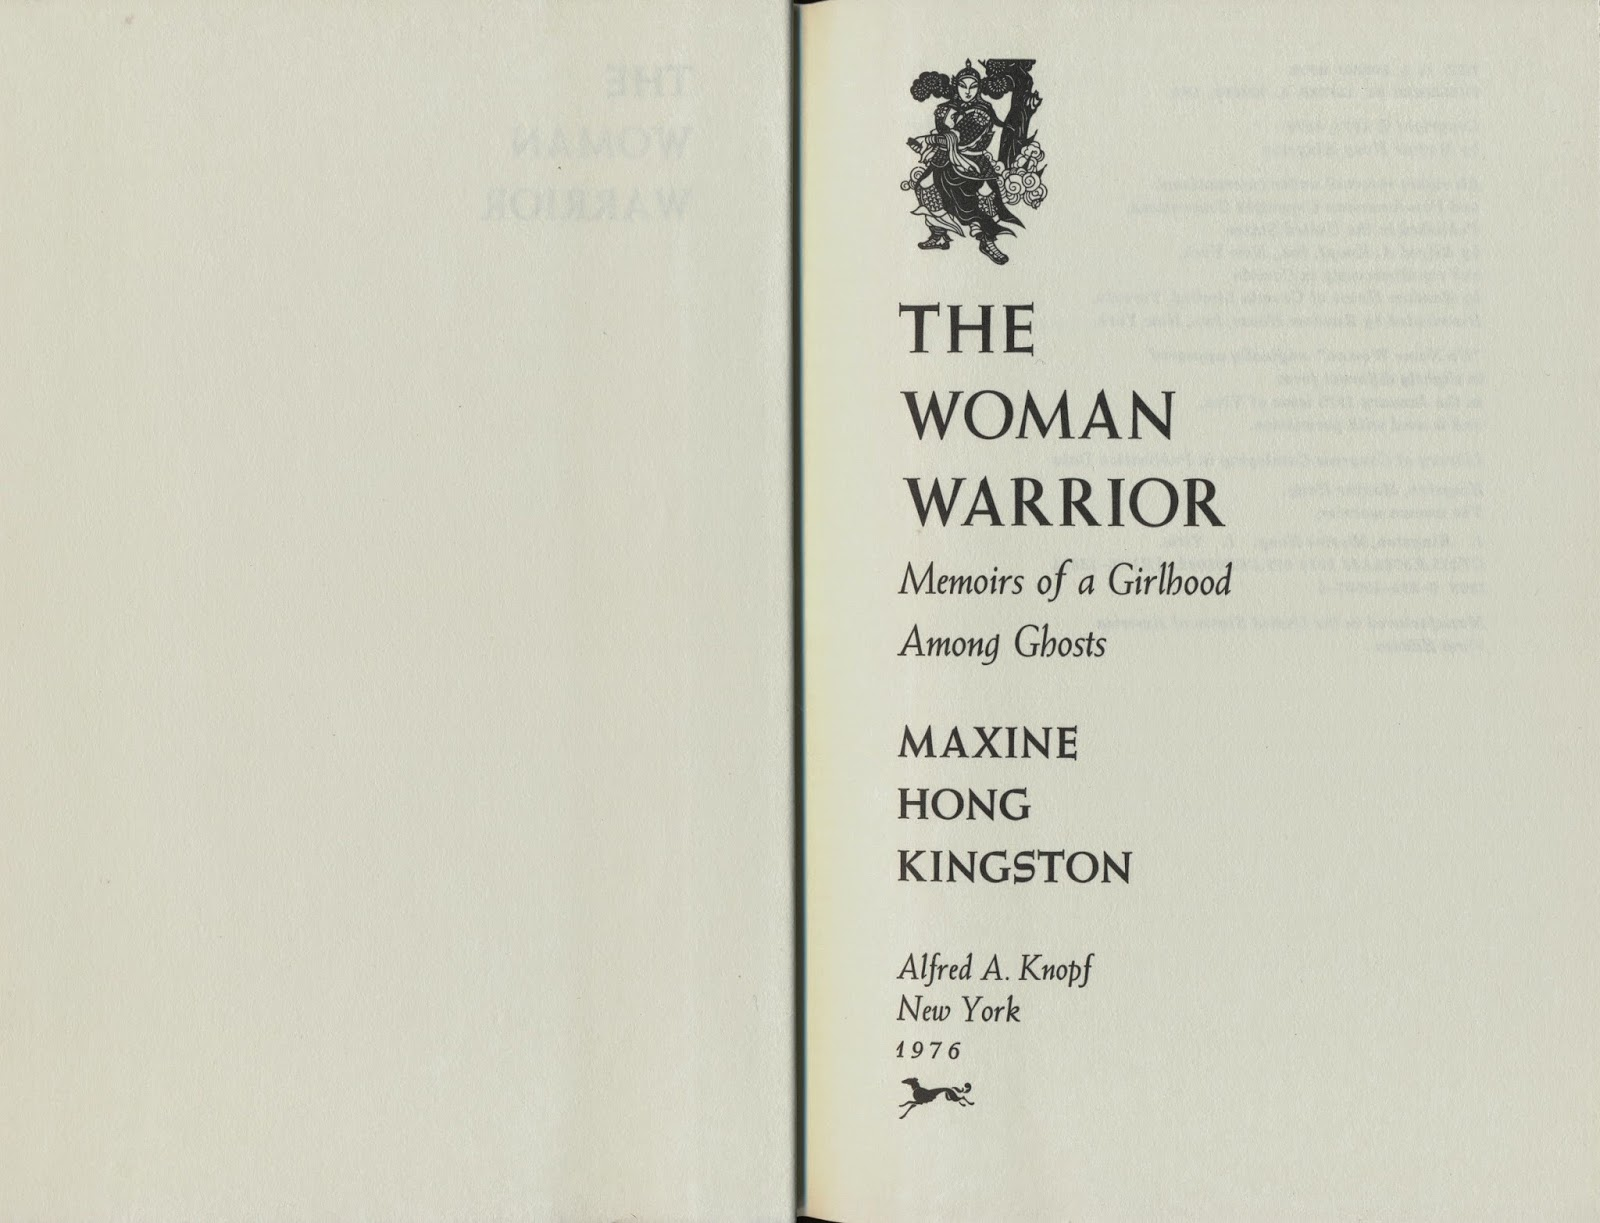 an analysis of familys cultural history in maxine hong kingstons the woman warrior memoirs of a girl In her award-winning book the woman warrior, maxine hong kingston created an as a girl, kingston lives achieving a new understanding of her family's.